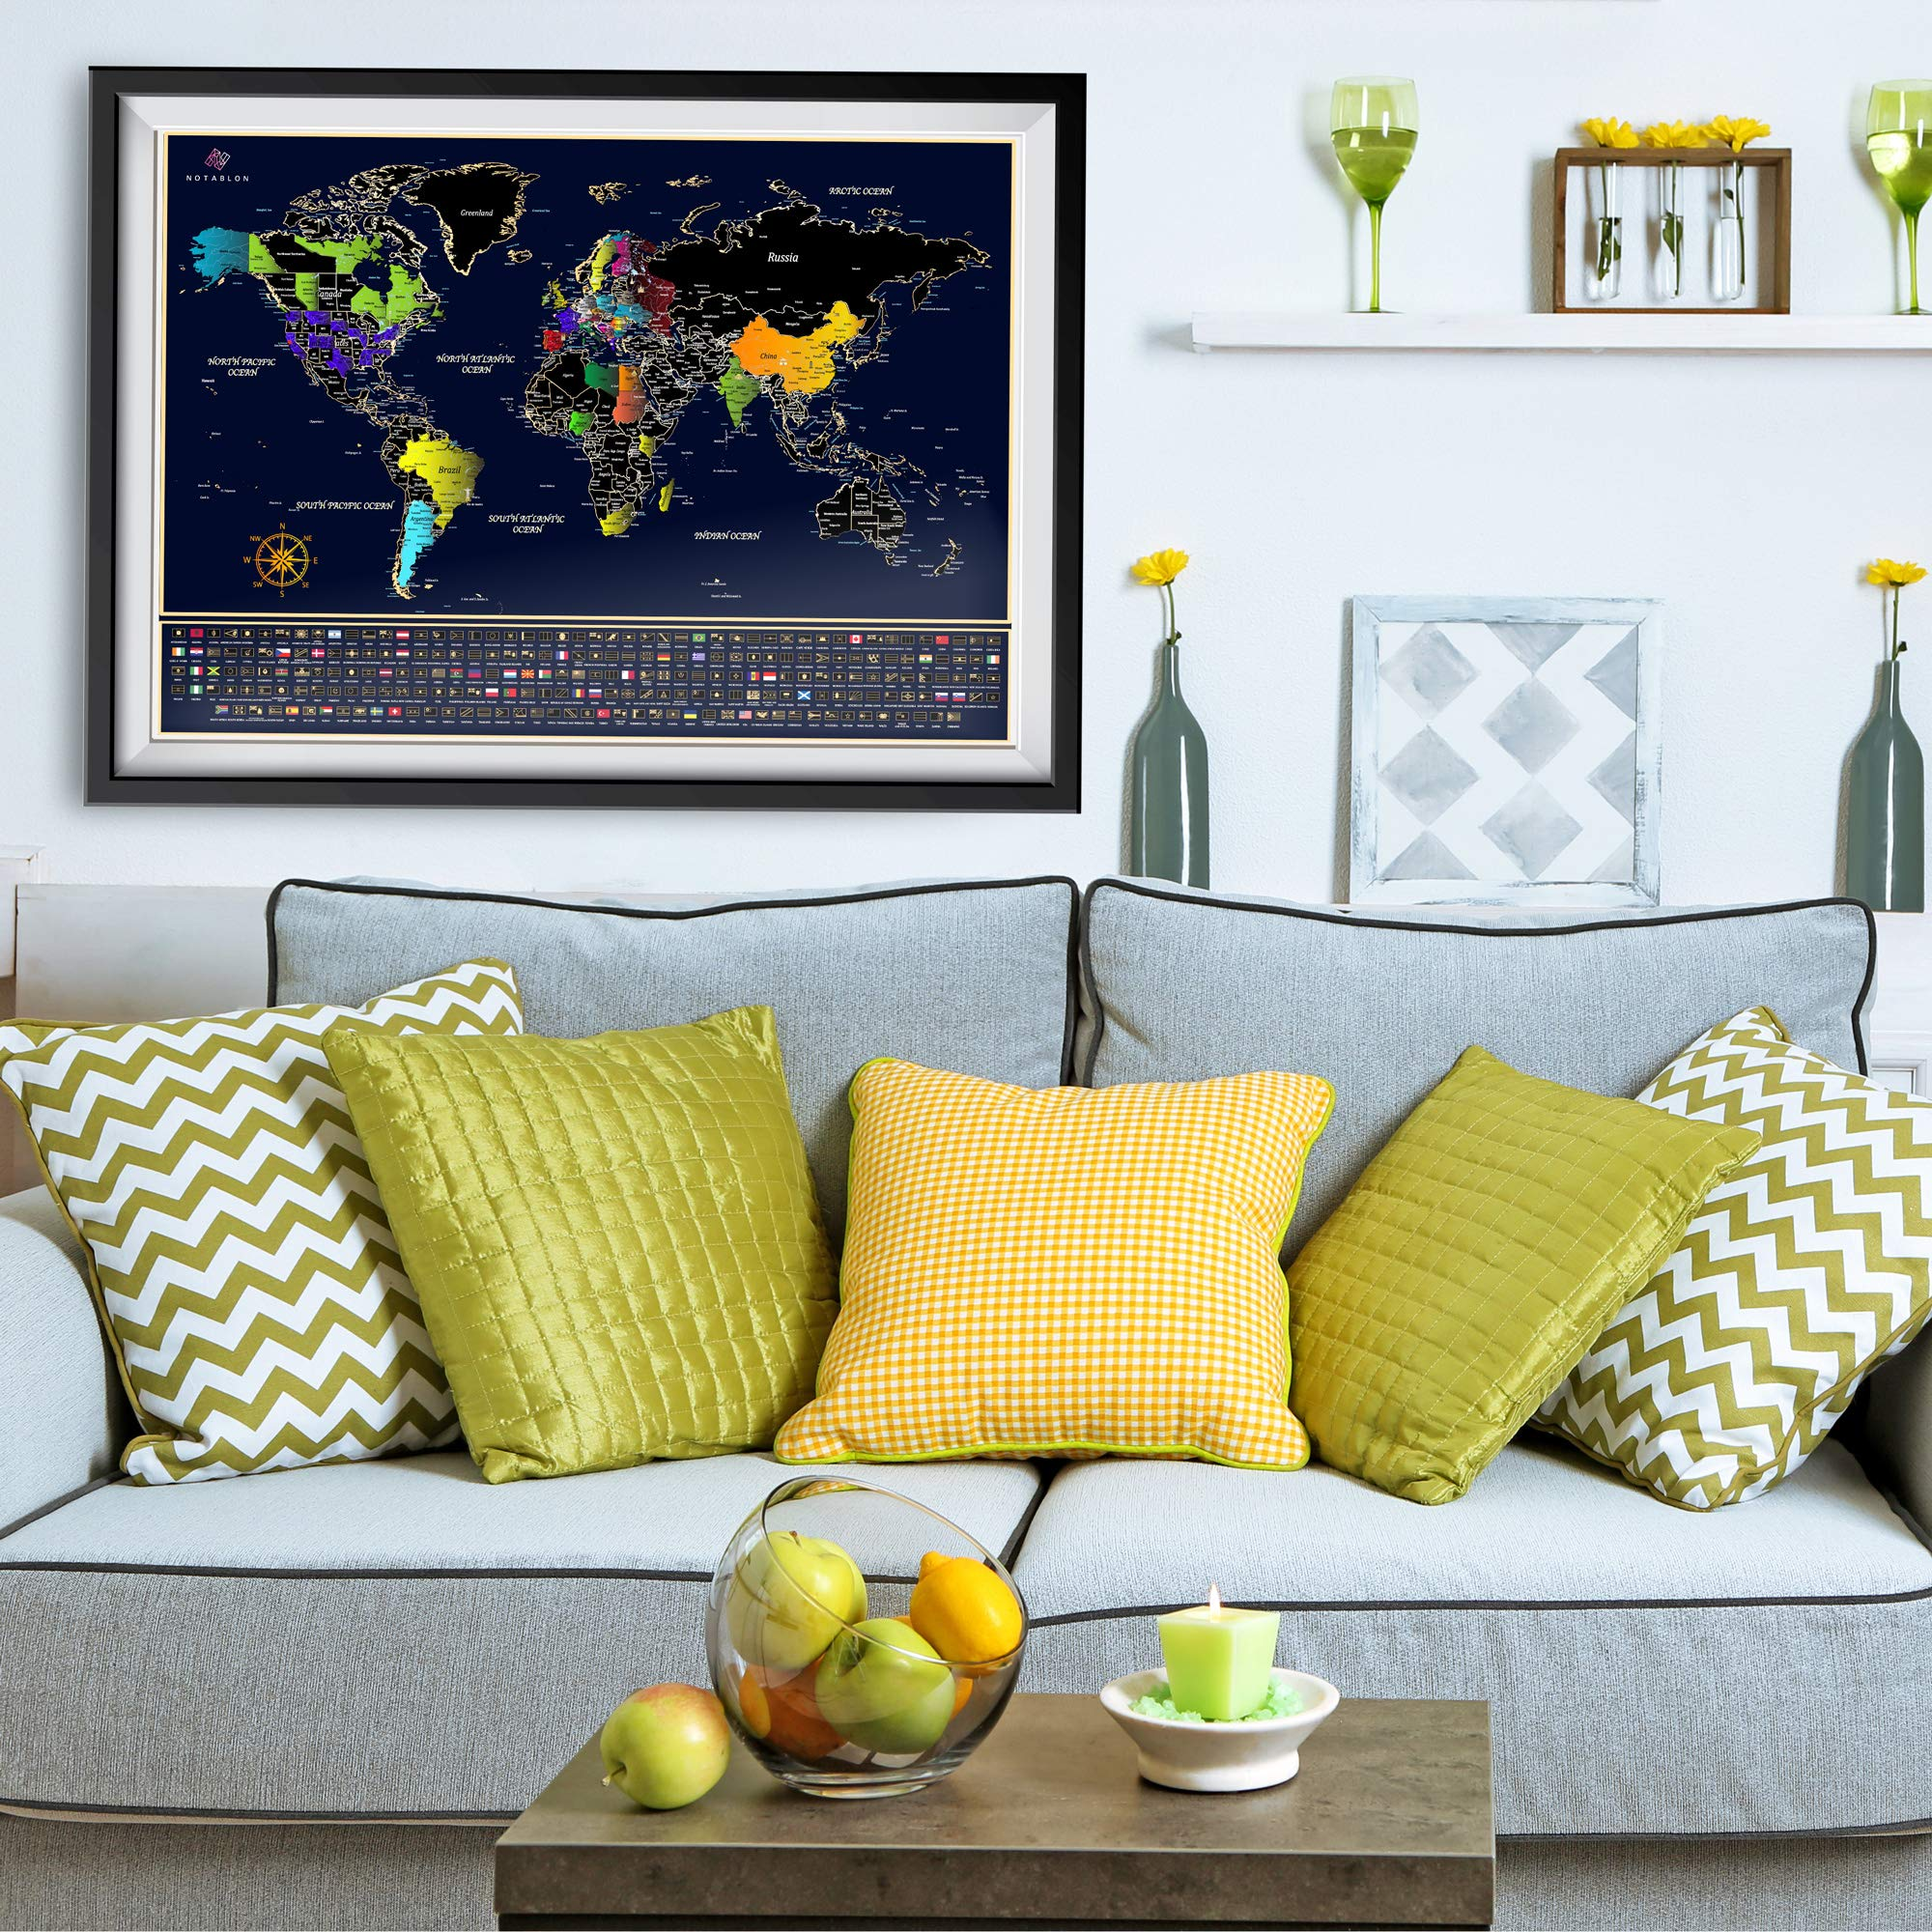 Unique Scratch Off Map of The World - Large Deluxe Personalized Travel Map Poster with B0NUS Scratch Off USA Map – Outlined US States, Landmarks, Roads, Rivers – All Accessories Included – Great GlFT by Notablon (Image #6)